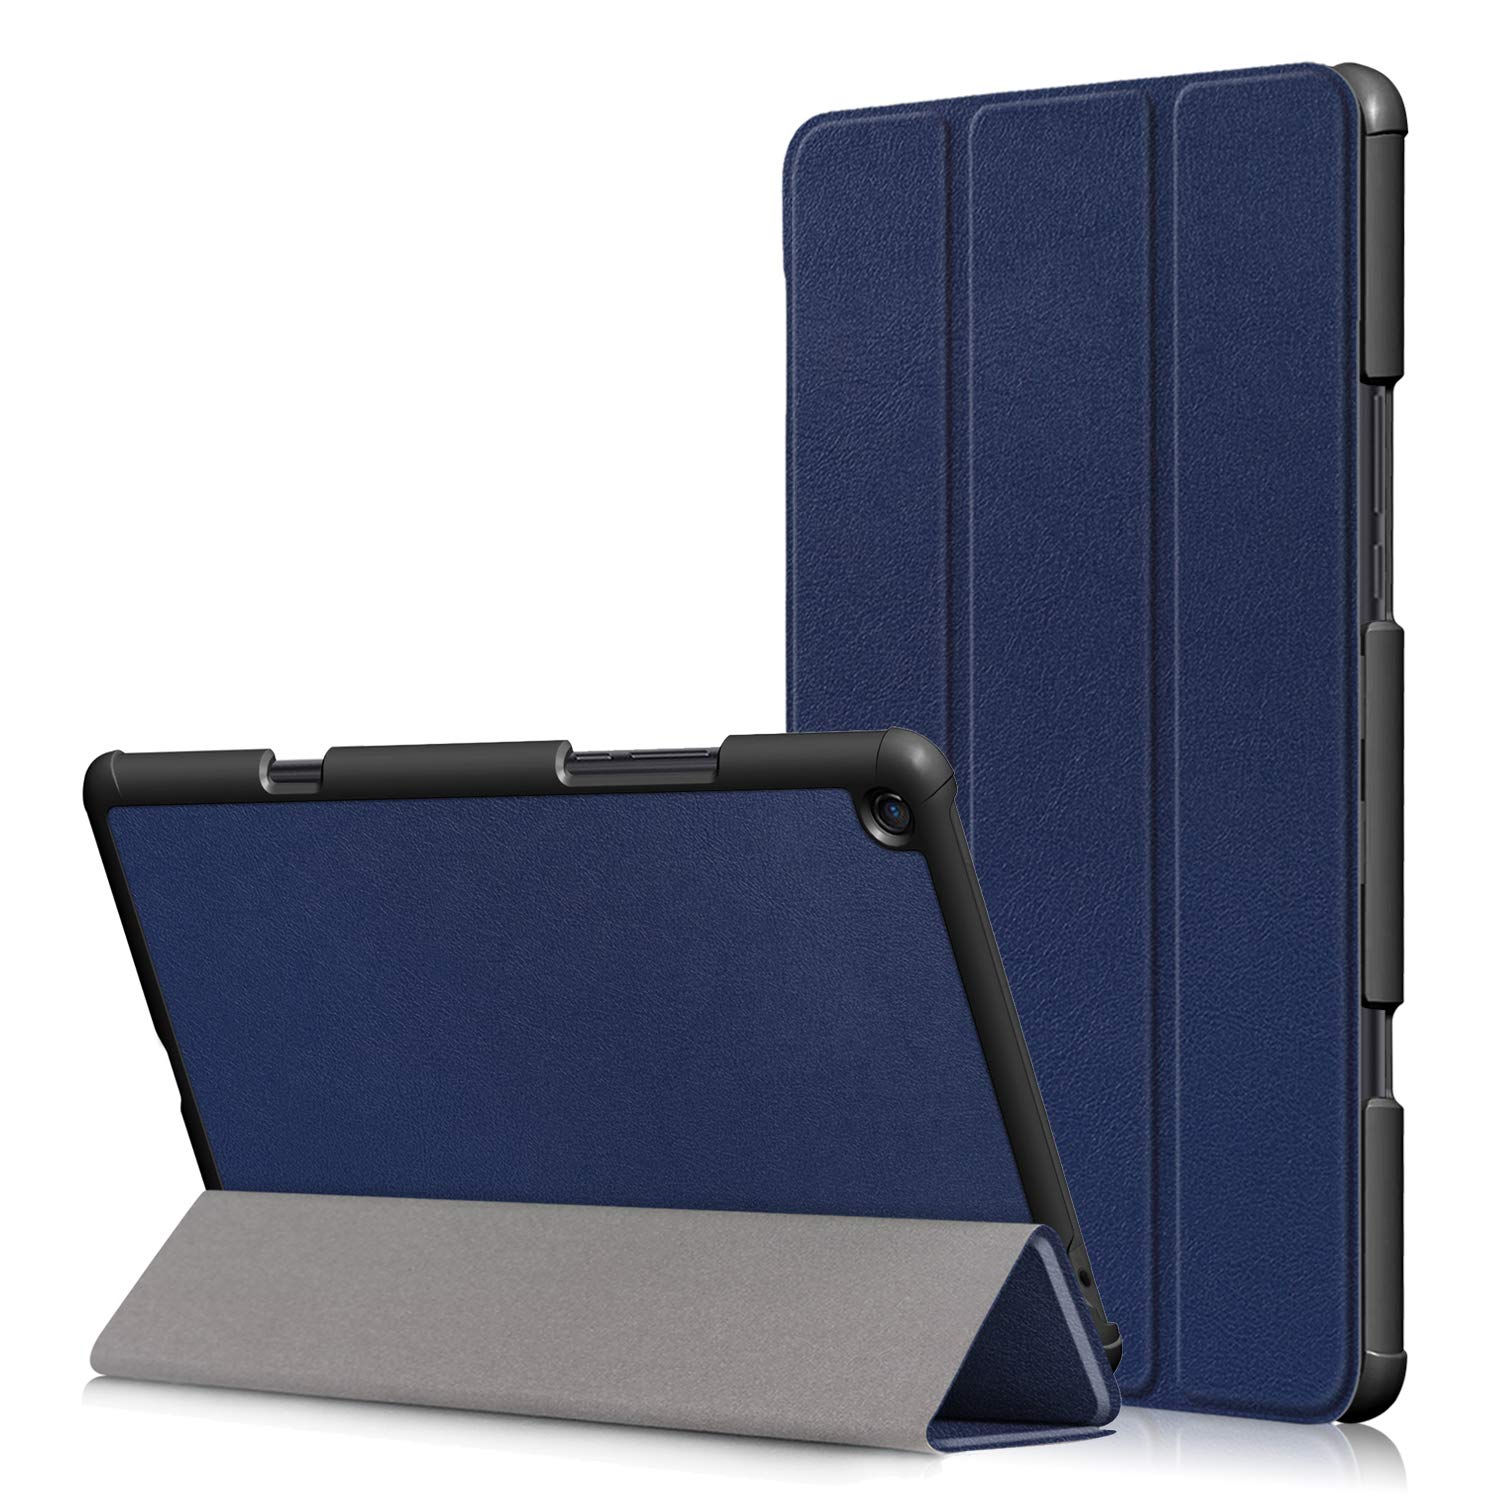 TenYll Xiaomi Mi Pad 4 Plus Funda, Chasis portátil [Ultra-Delgado] [Ultra-Ligero] Smart Tablet PC Holder para Xiaomi Mi Pad 4 Plus Tableta -Azul